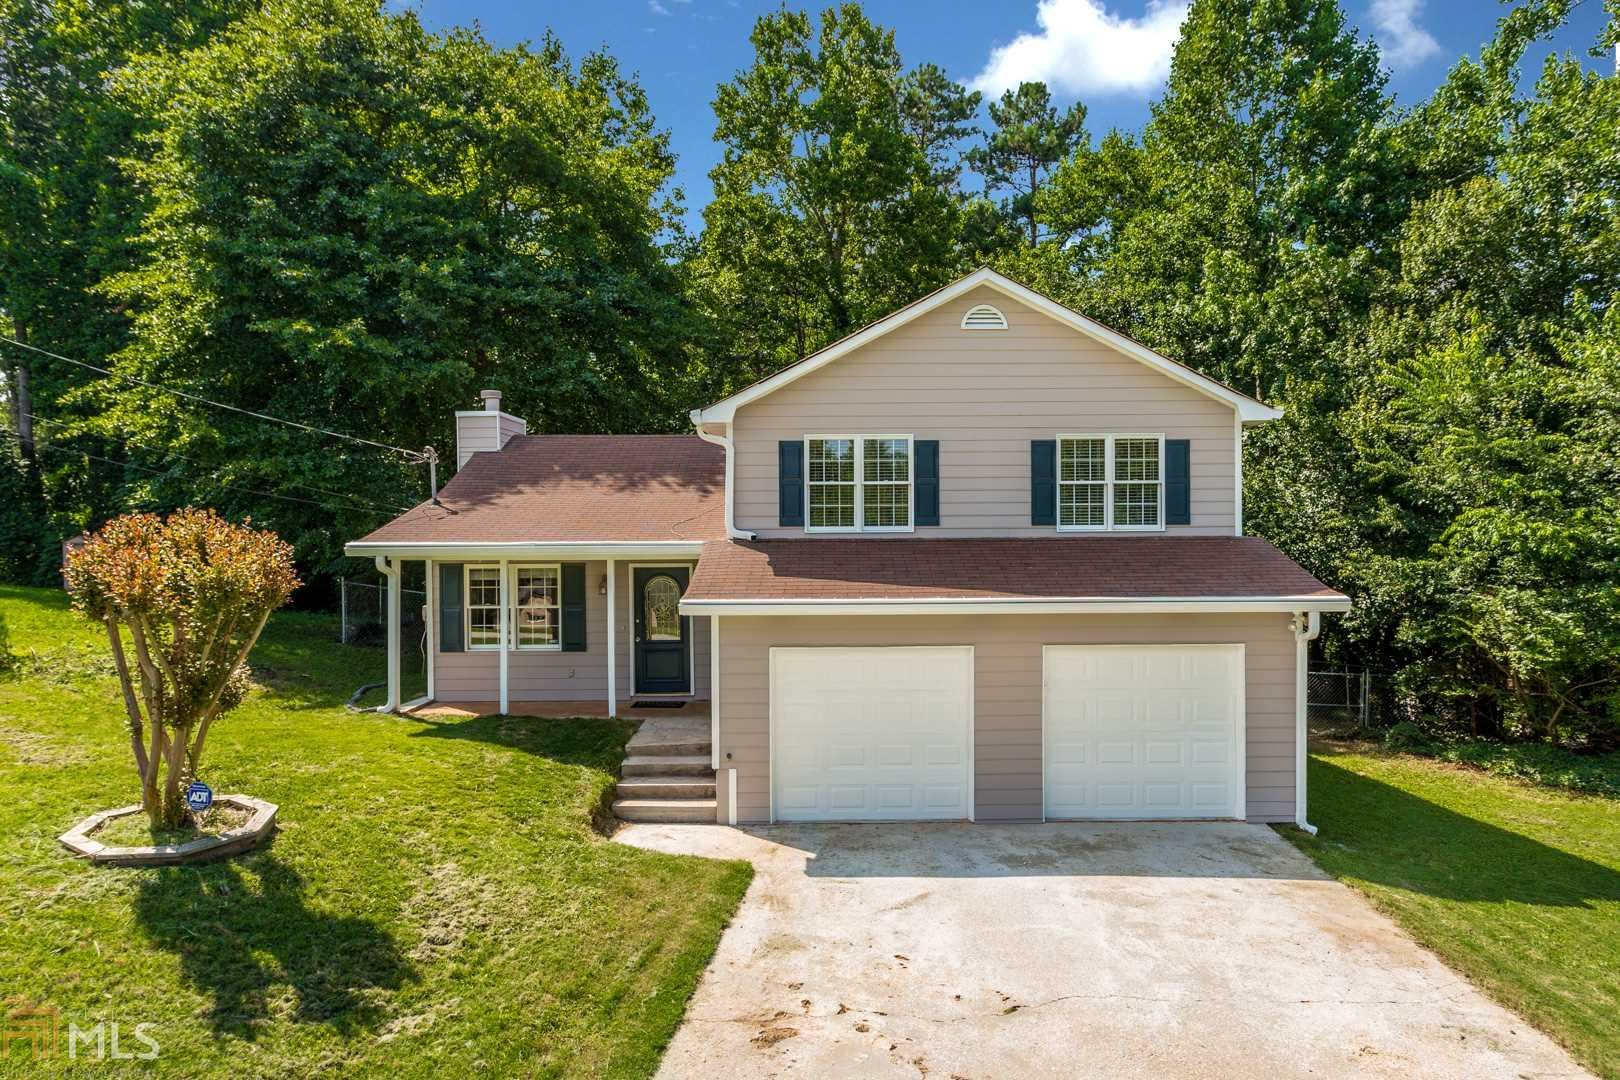 6200 Shoreland Cir, Buford, GA 30518 - MLS#: 8815762